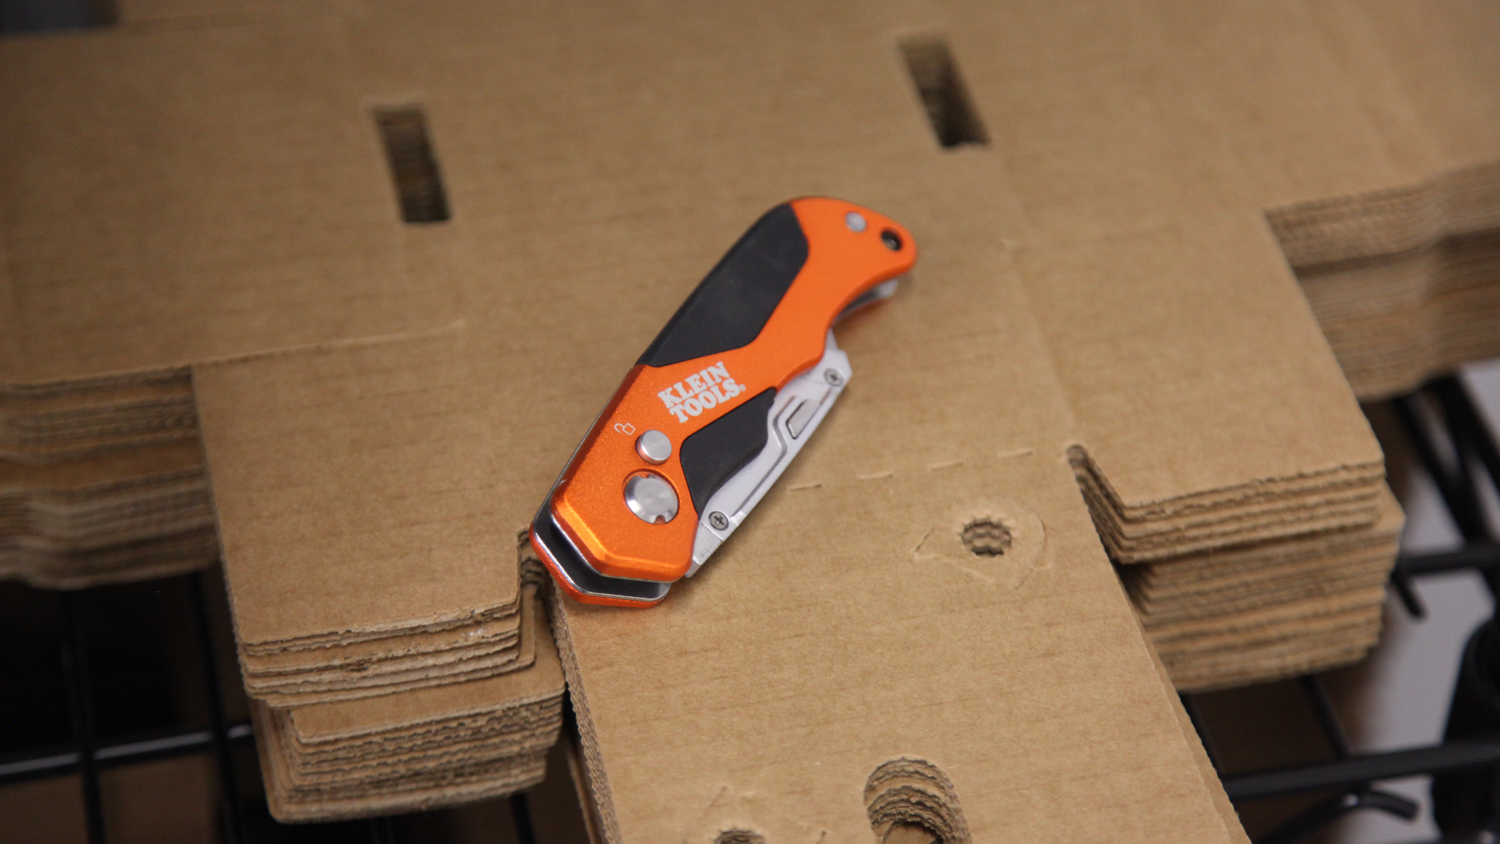 Klein folding utility knife - Secure and great to use.